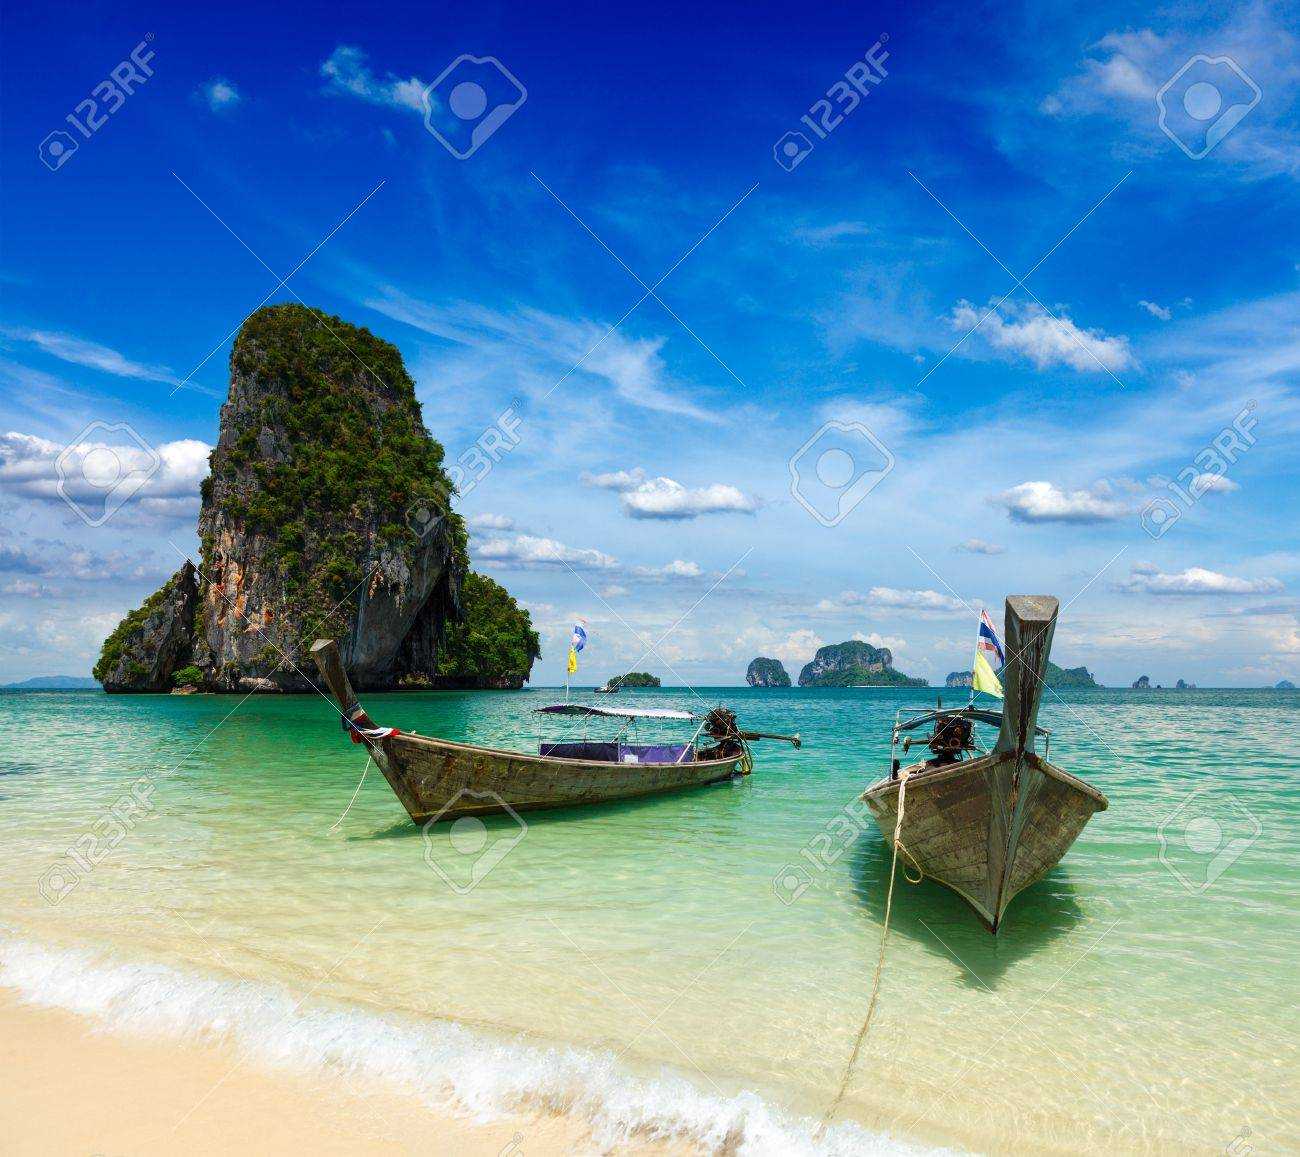 Long tail boats on tropical beach, Krabi, Thailand Stock Photo - 16185823